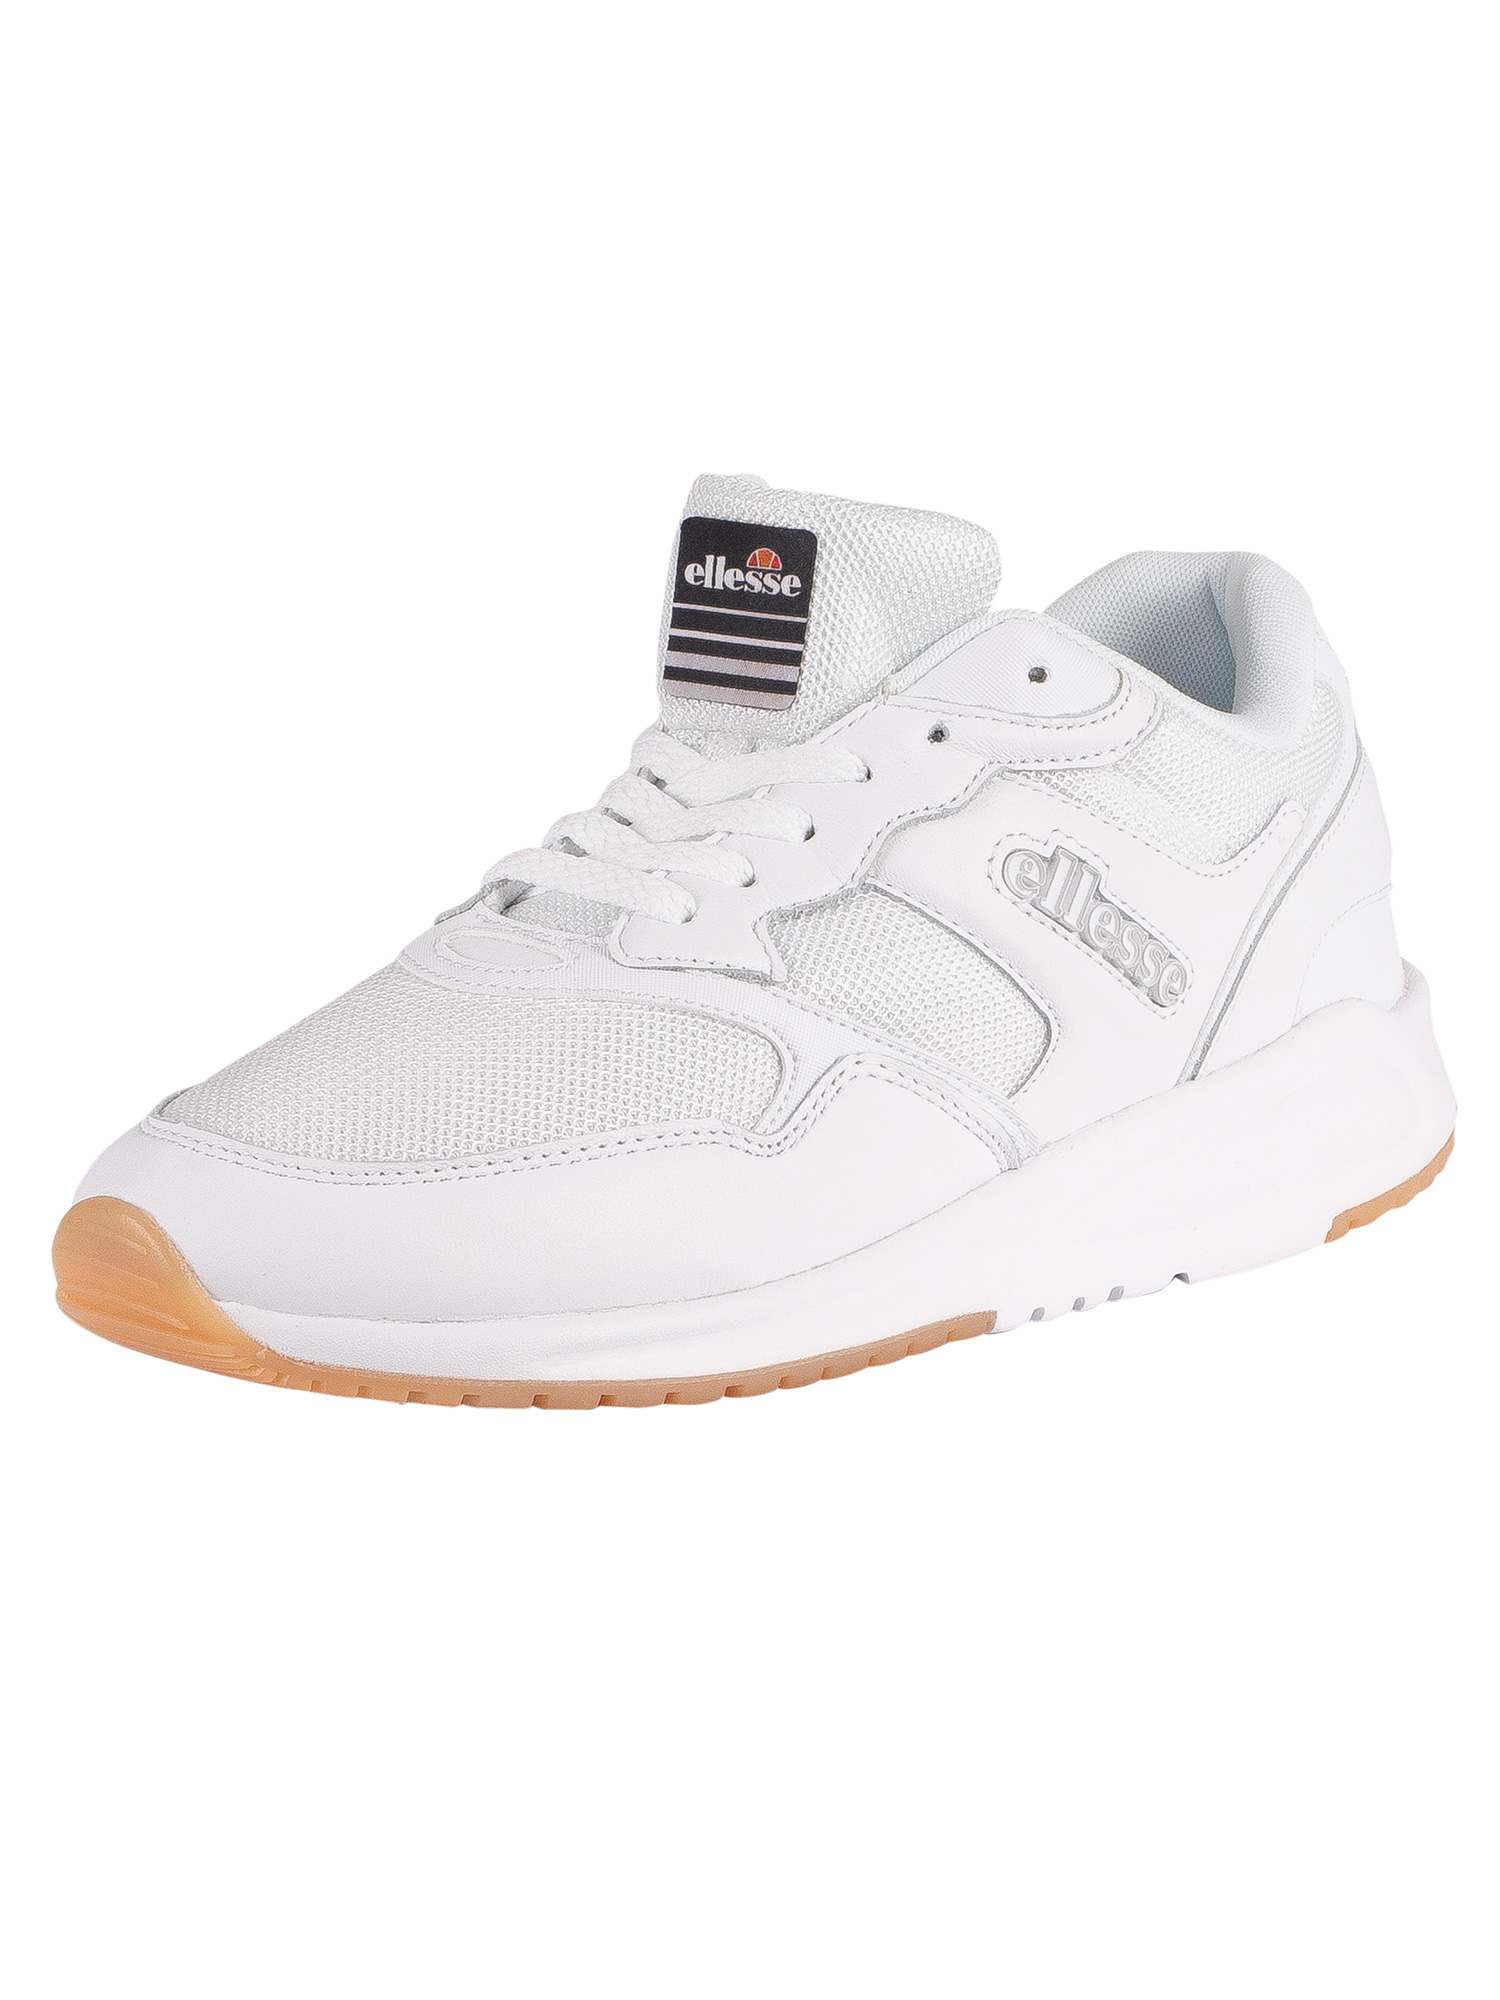 Ellesse NYC84 Leather Trainers - White/White